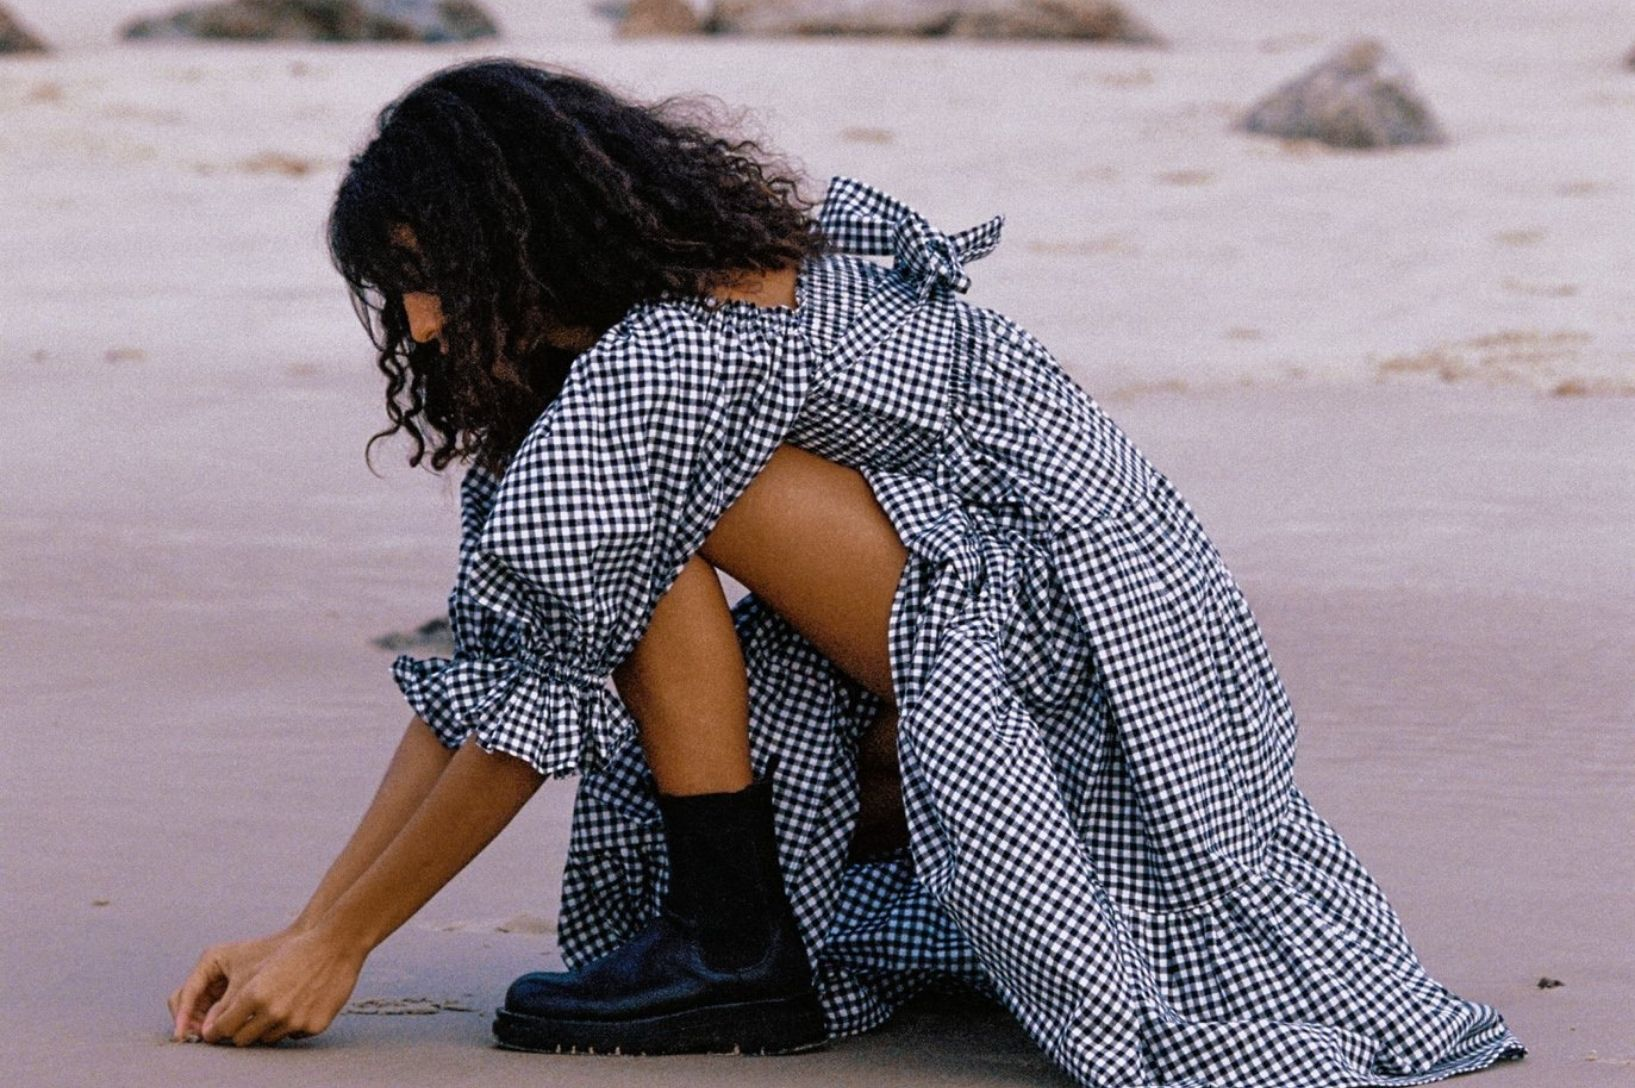 A growing list of ethical, sustainable and timeless dress brands you'll be proud to outfit repeat.